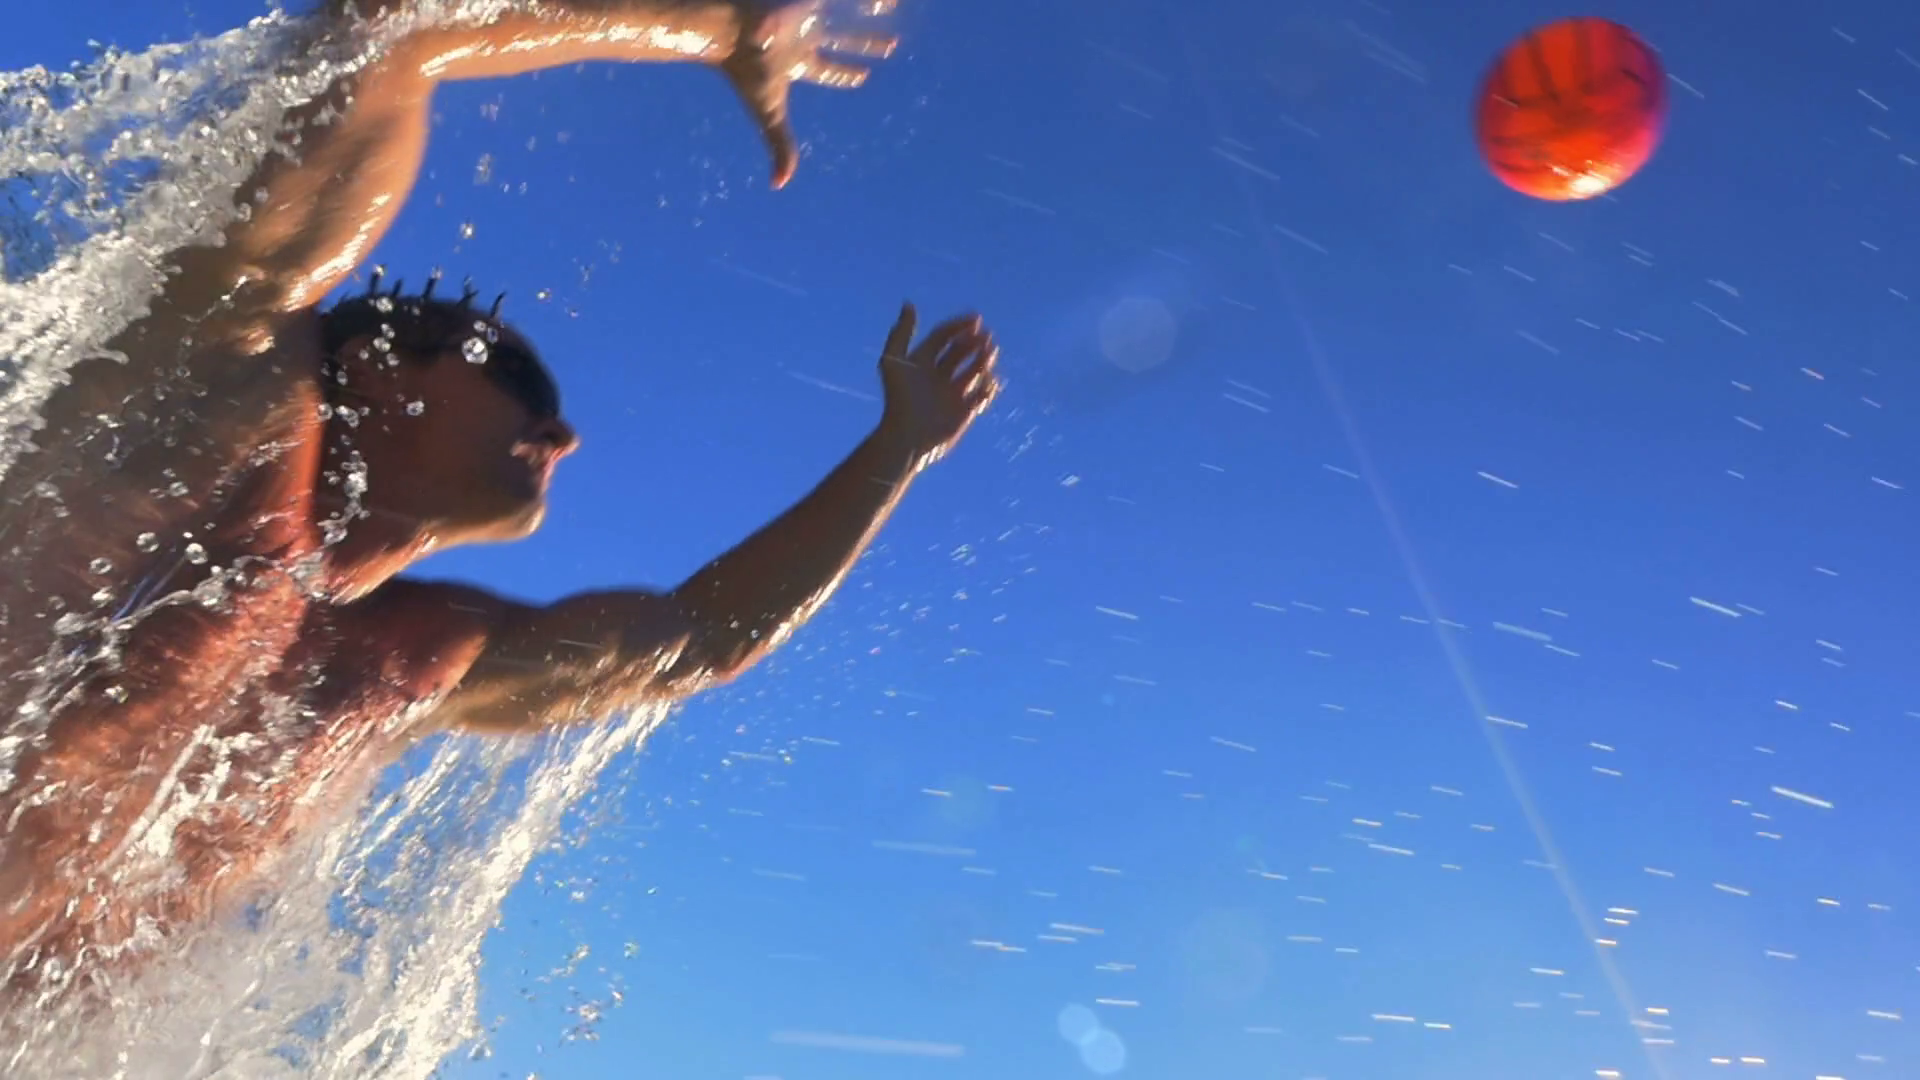 Water Polo Png Hd - Hd Slow Mo: Man Pass A Water Polo Ball Stock Video Footage   Videoblocks, Transparent background PNG HD thumbnail